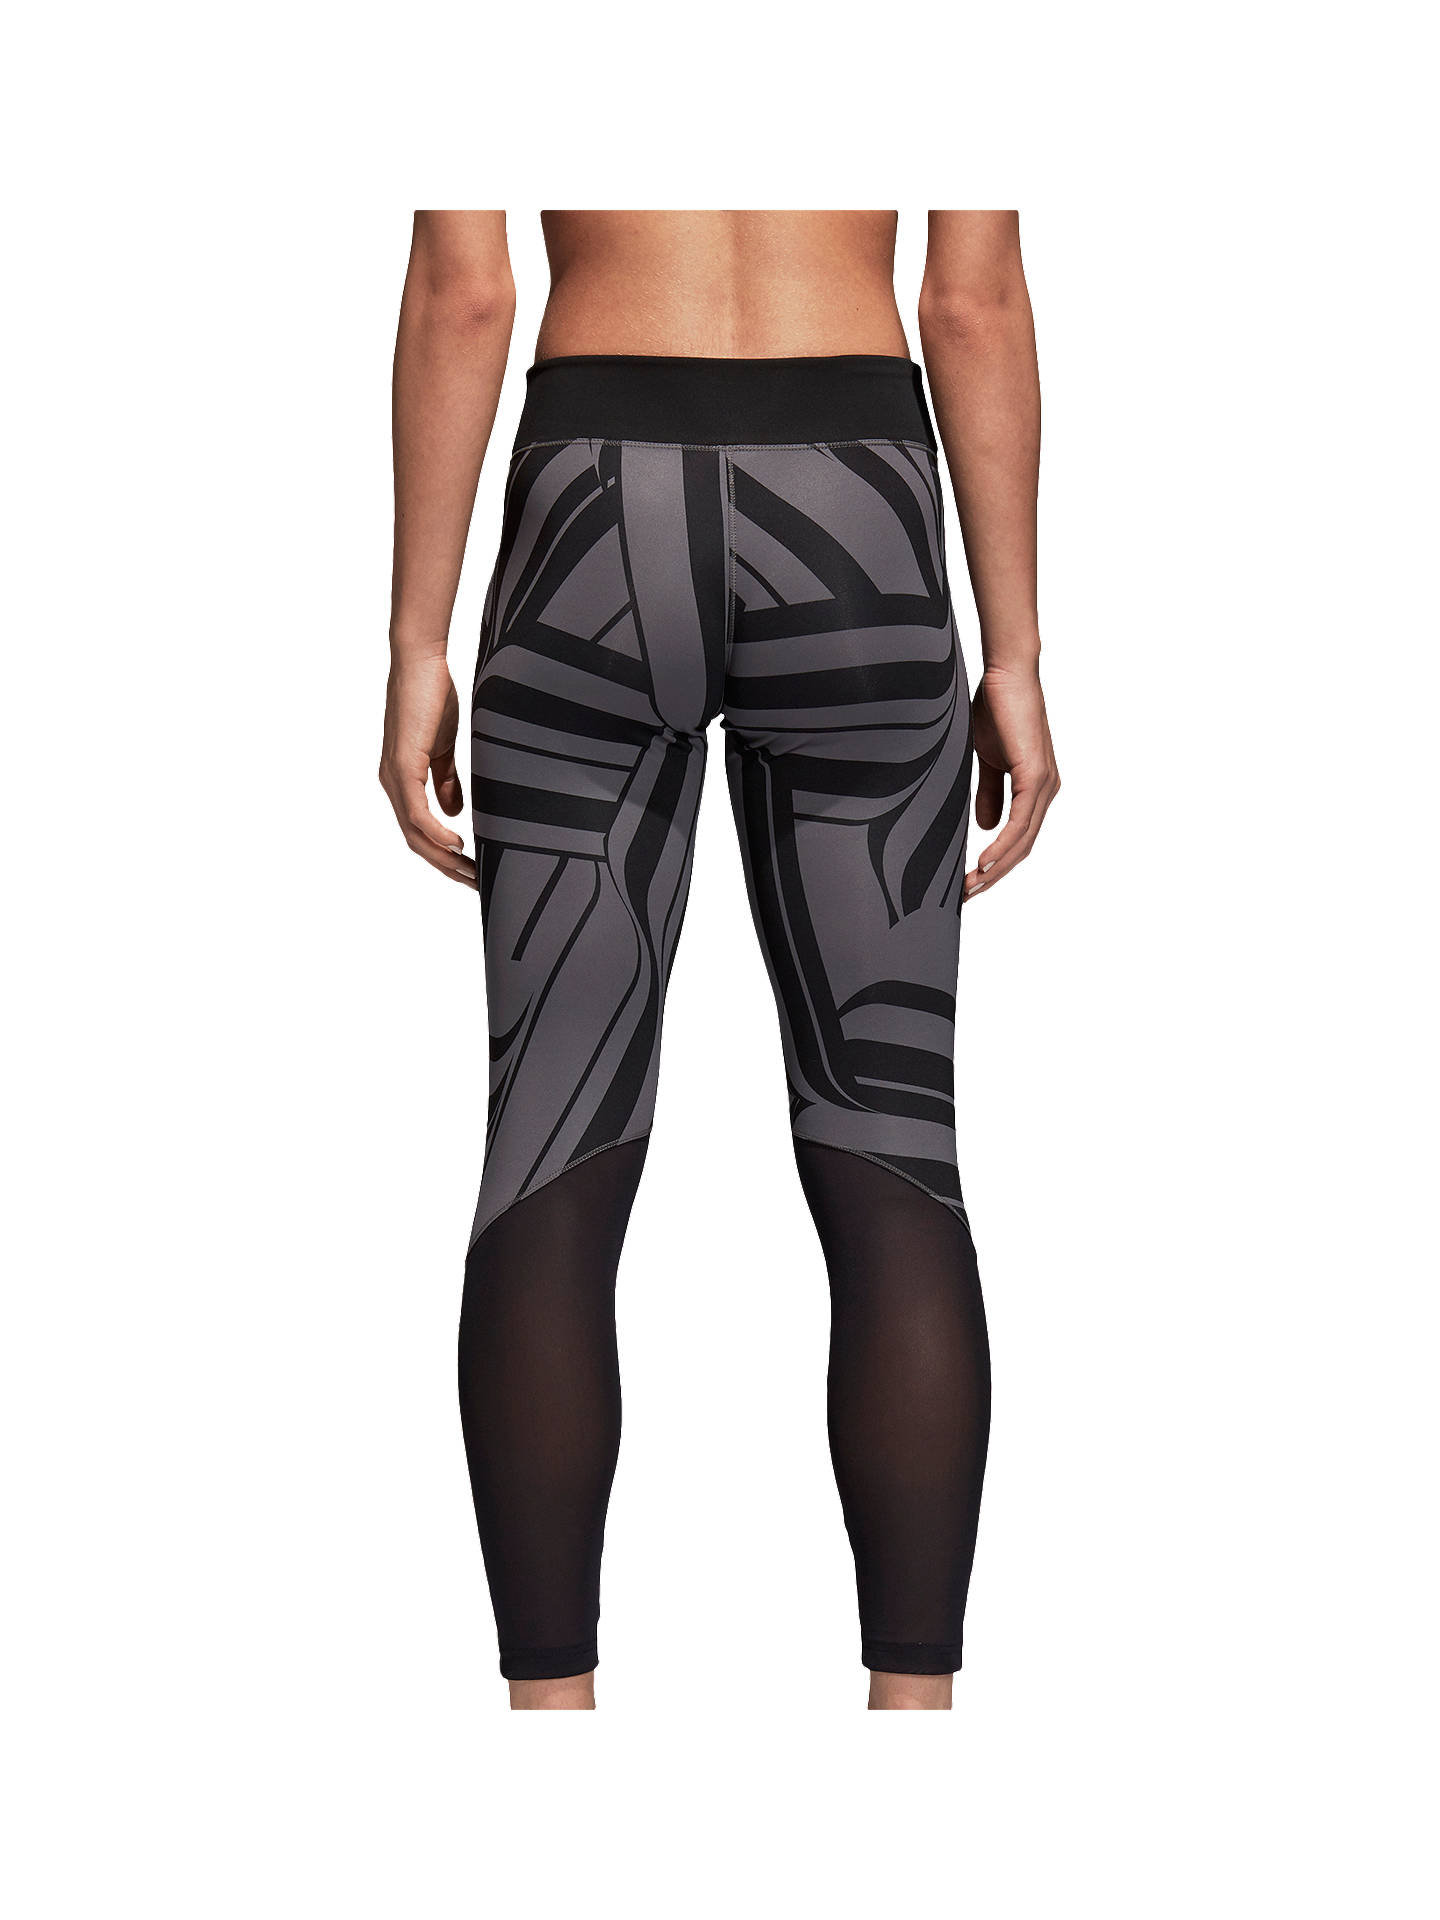 Buyadidas D2M Training Tights, Black, XS Online at johnlewis.com